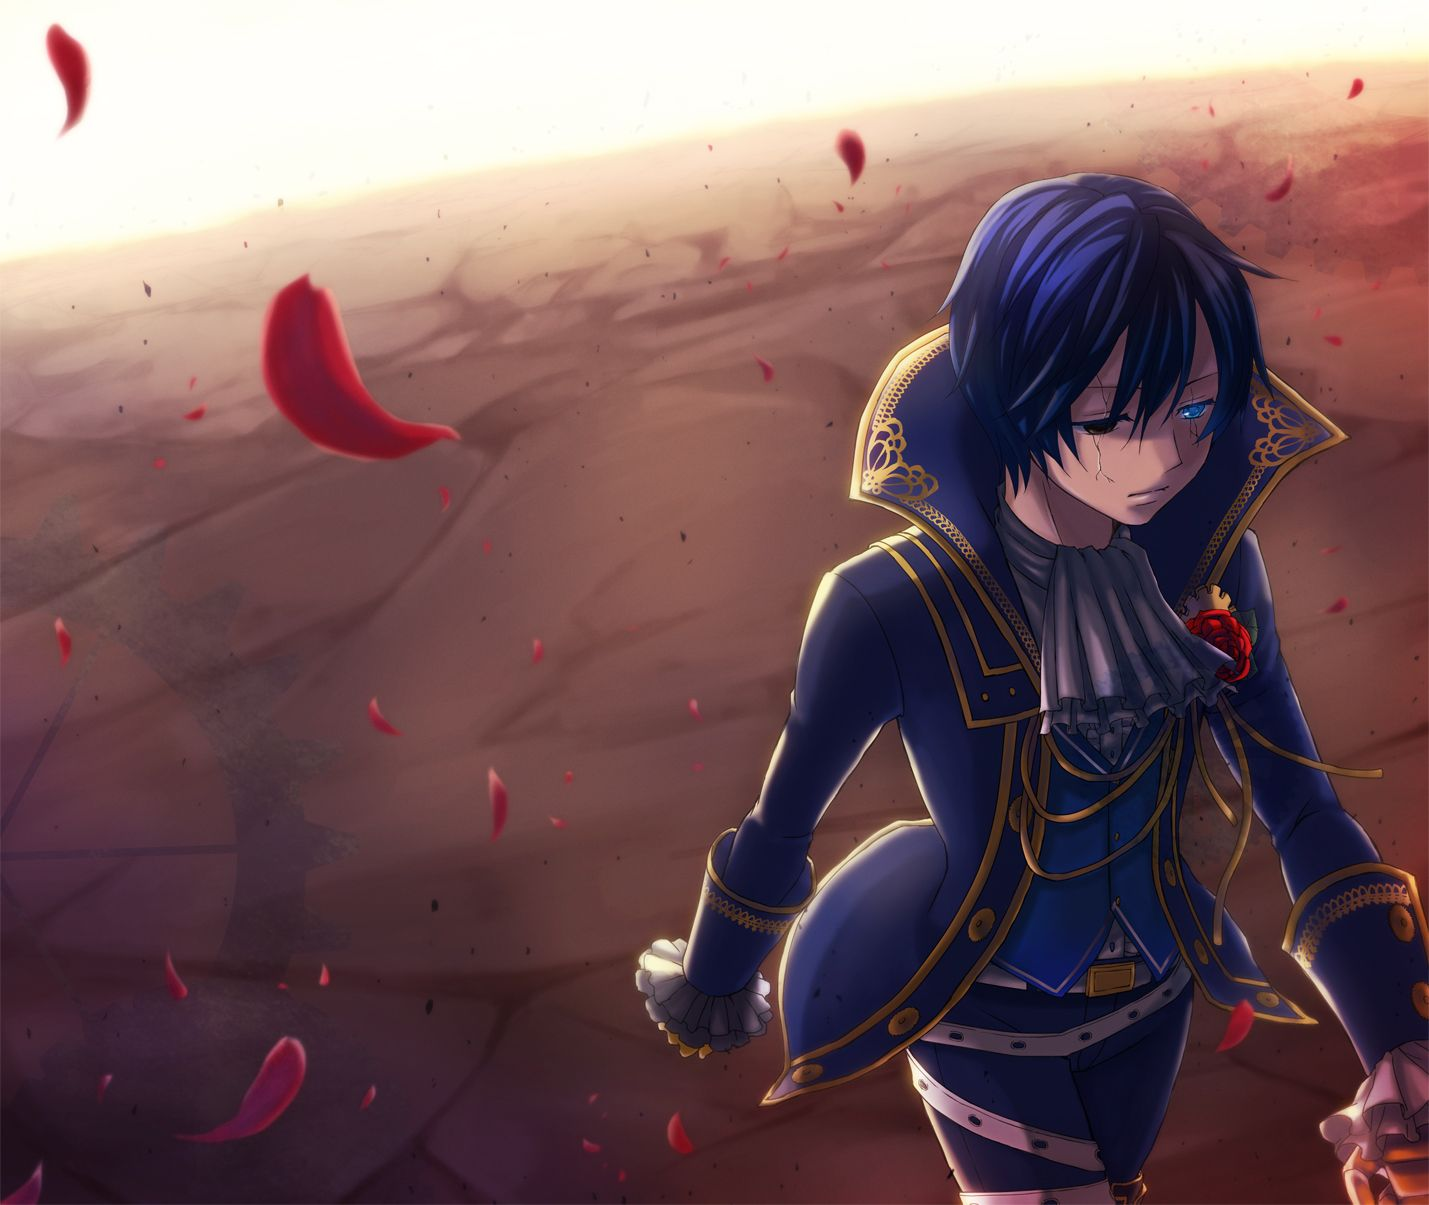 Ashes to ashes, dust to dust. | Vocaloid | Kaito shion ...